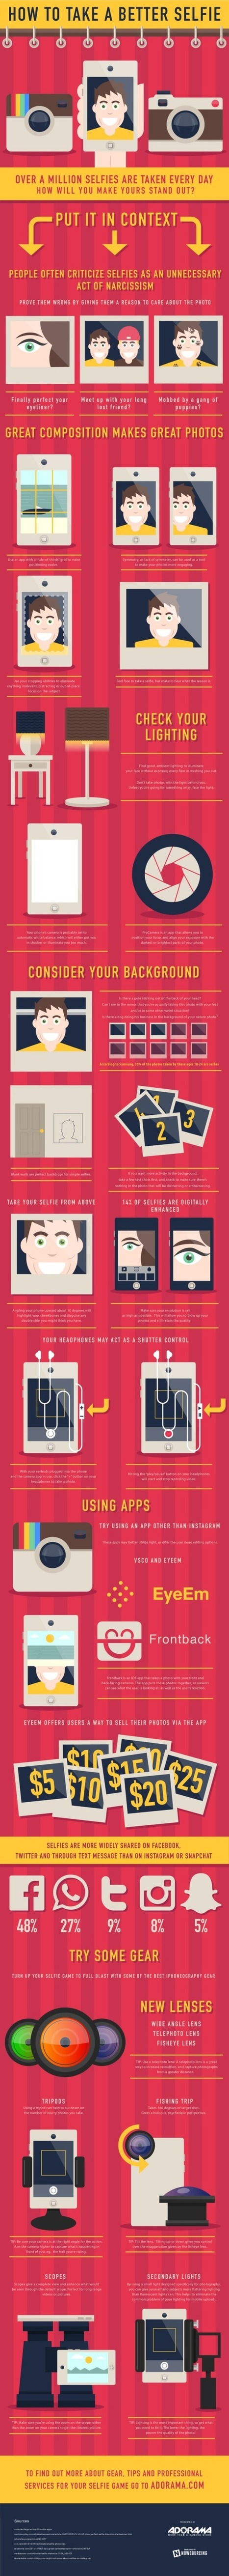 How To Take The Perfect Selfie; Tips From The Pros (Infographic) | Fotografía y sólo fotografía | Scoop.it